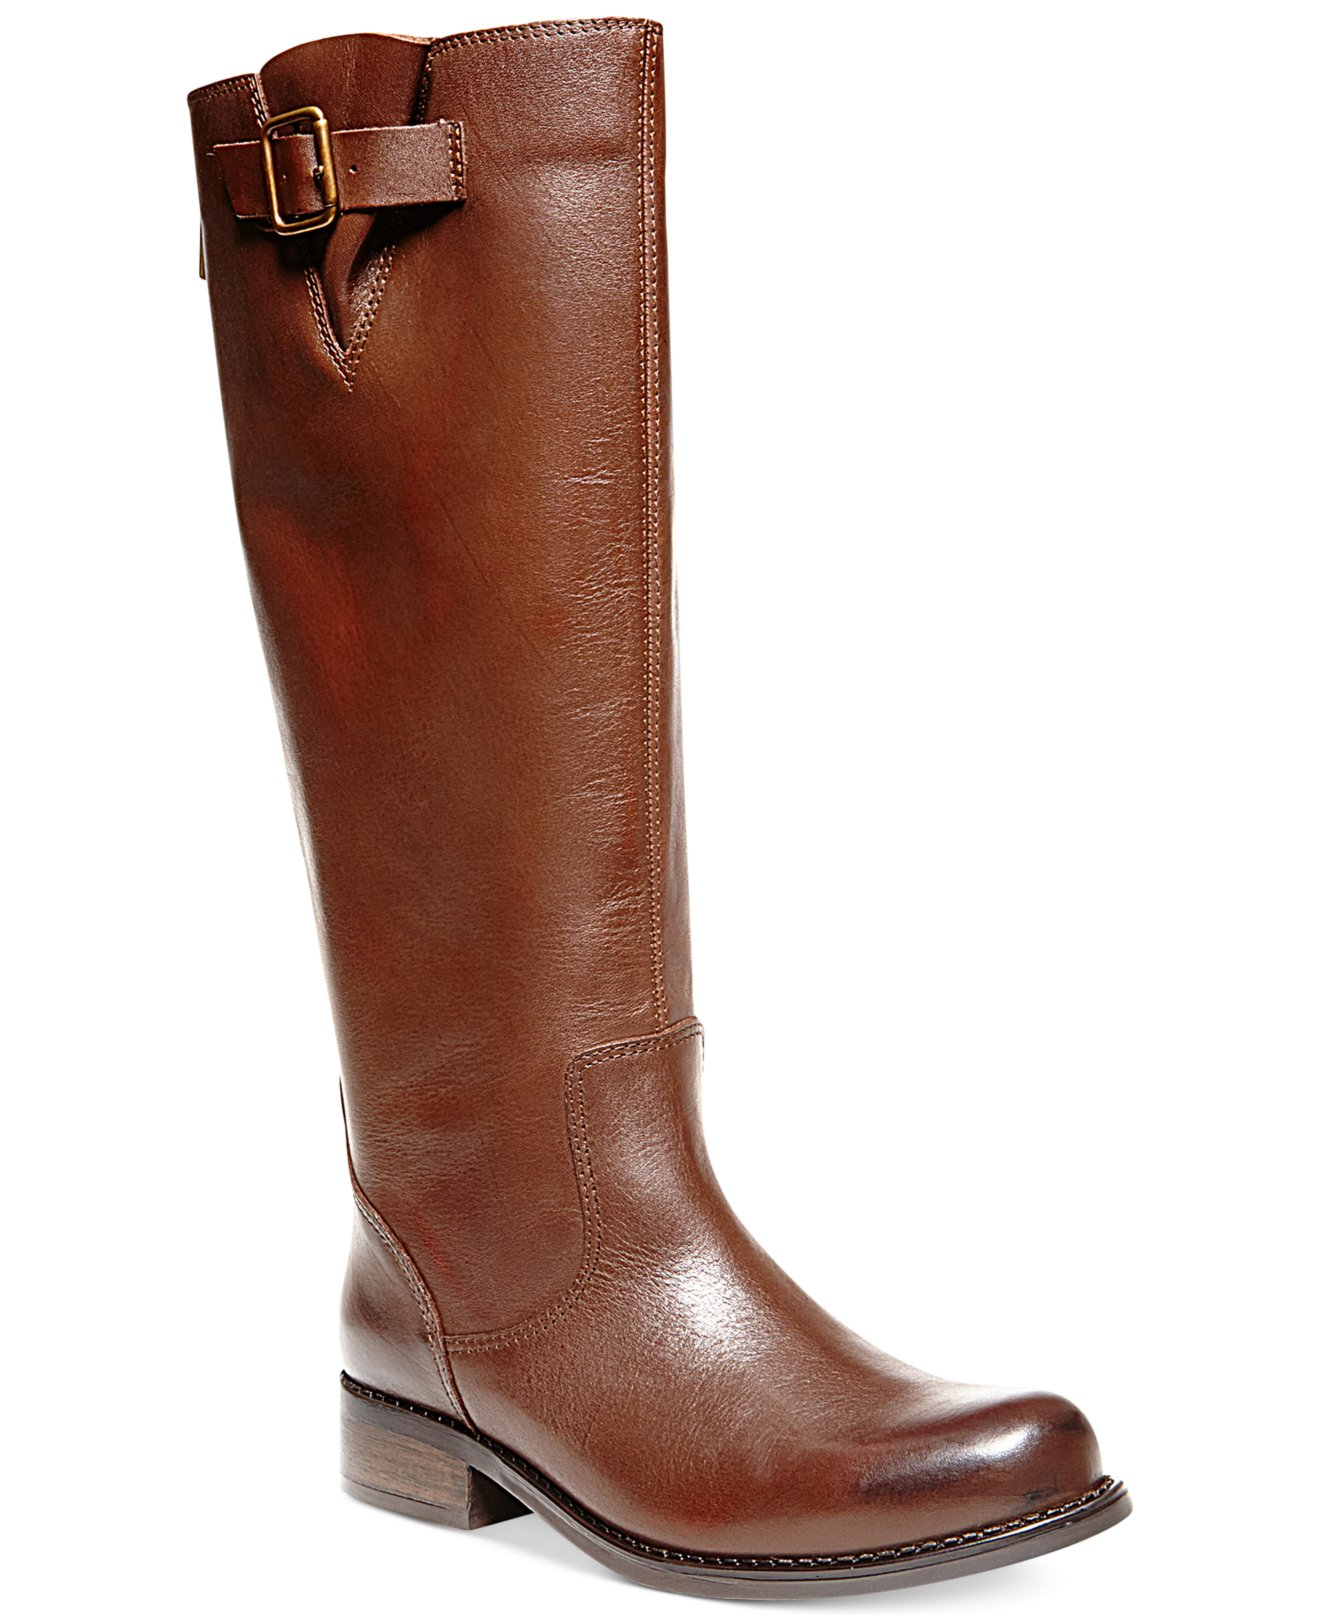 Buy Steven by Steven Madden boots, and shoes, and get free shipping with $99 purchase.